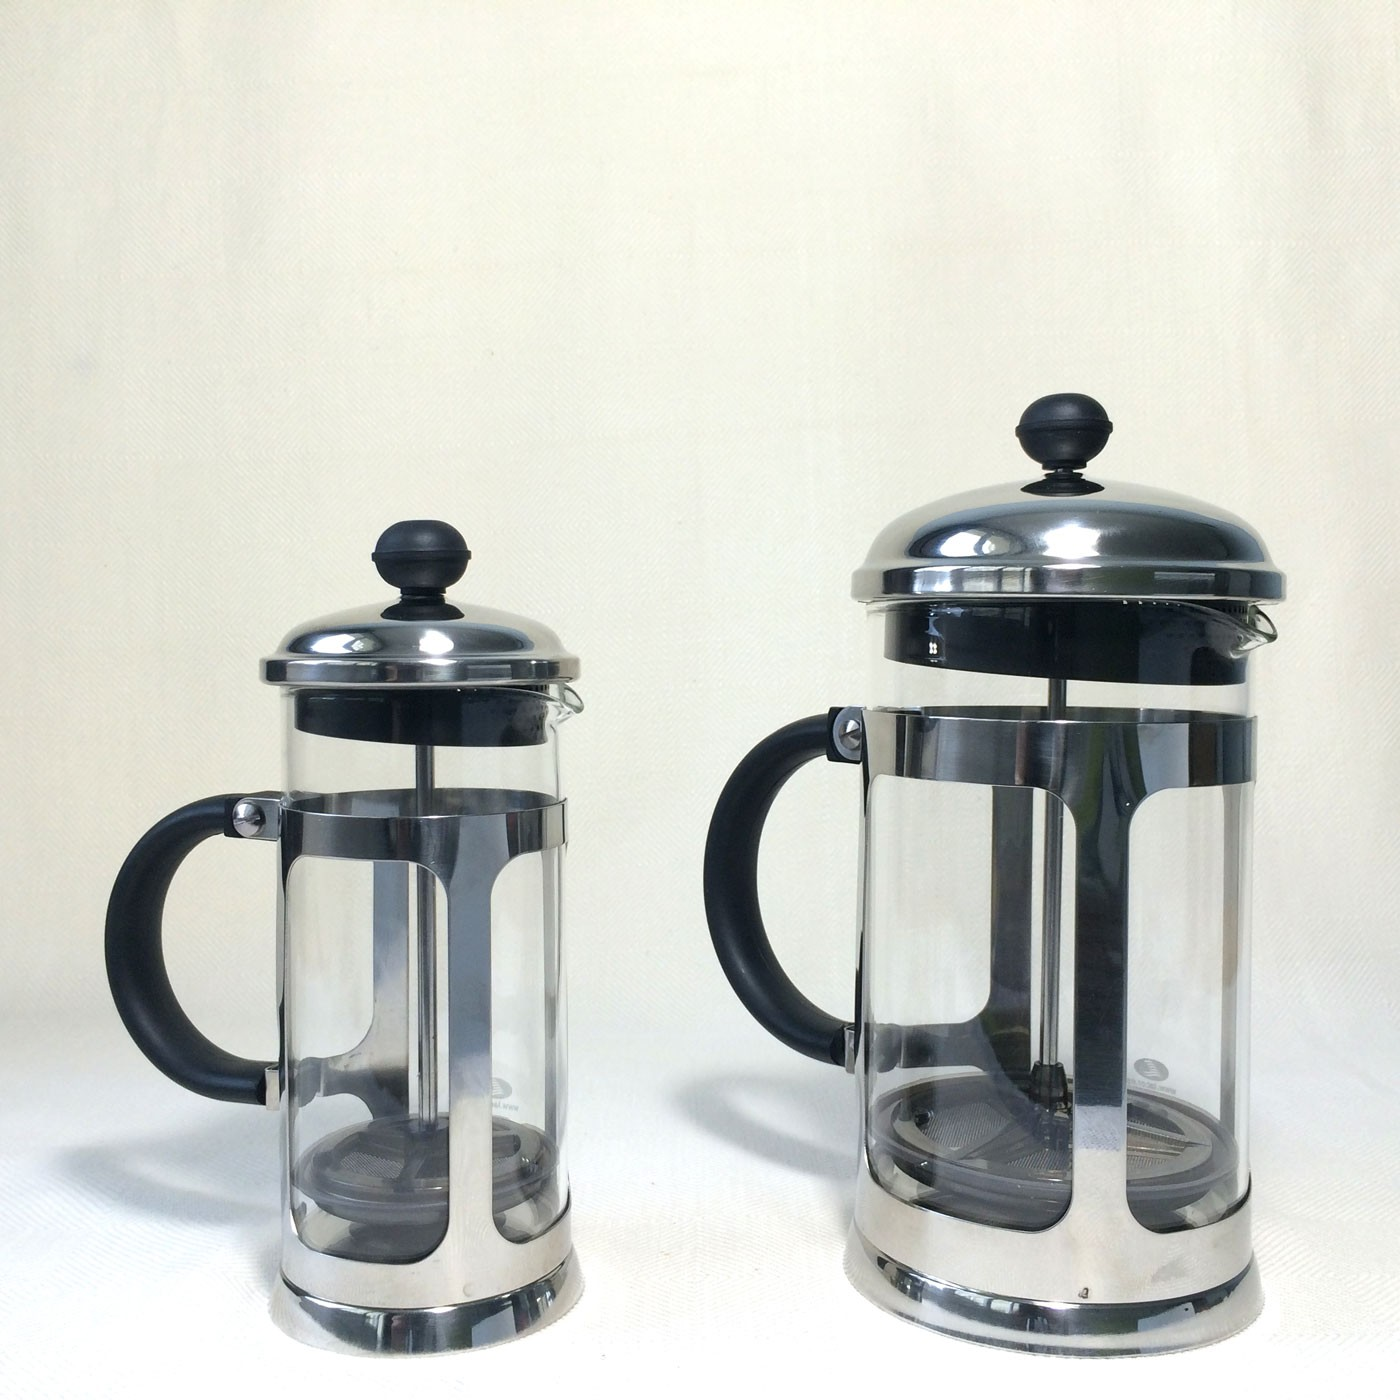 Cafeti re piston french press for Applique murale exterieur piston